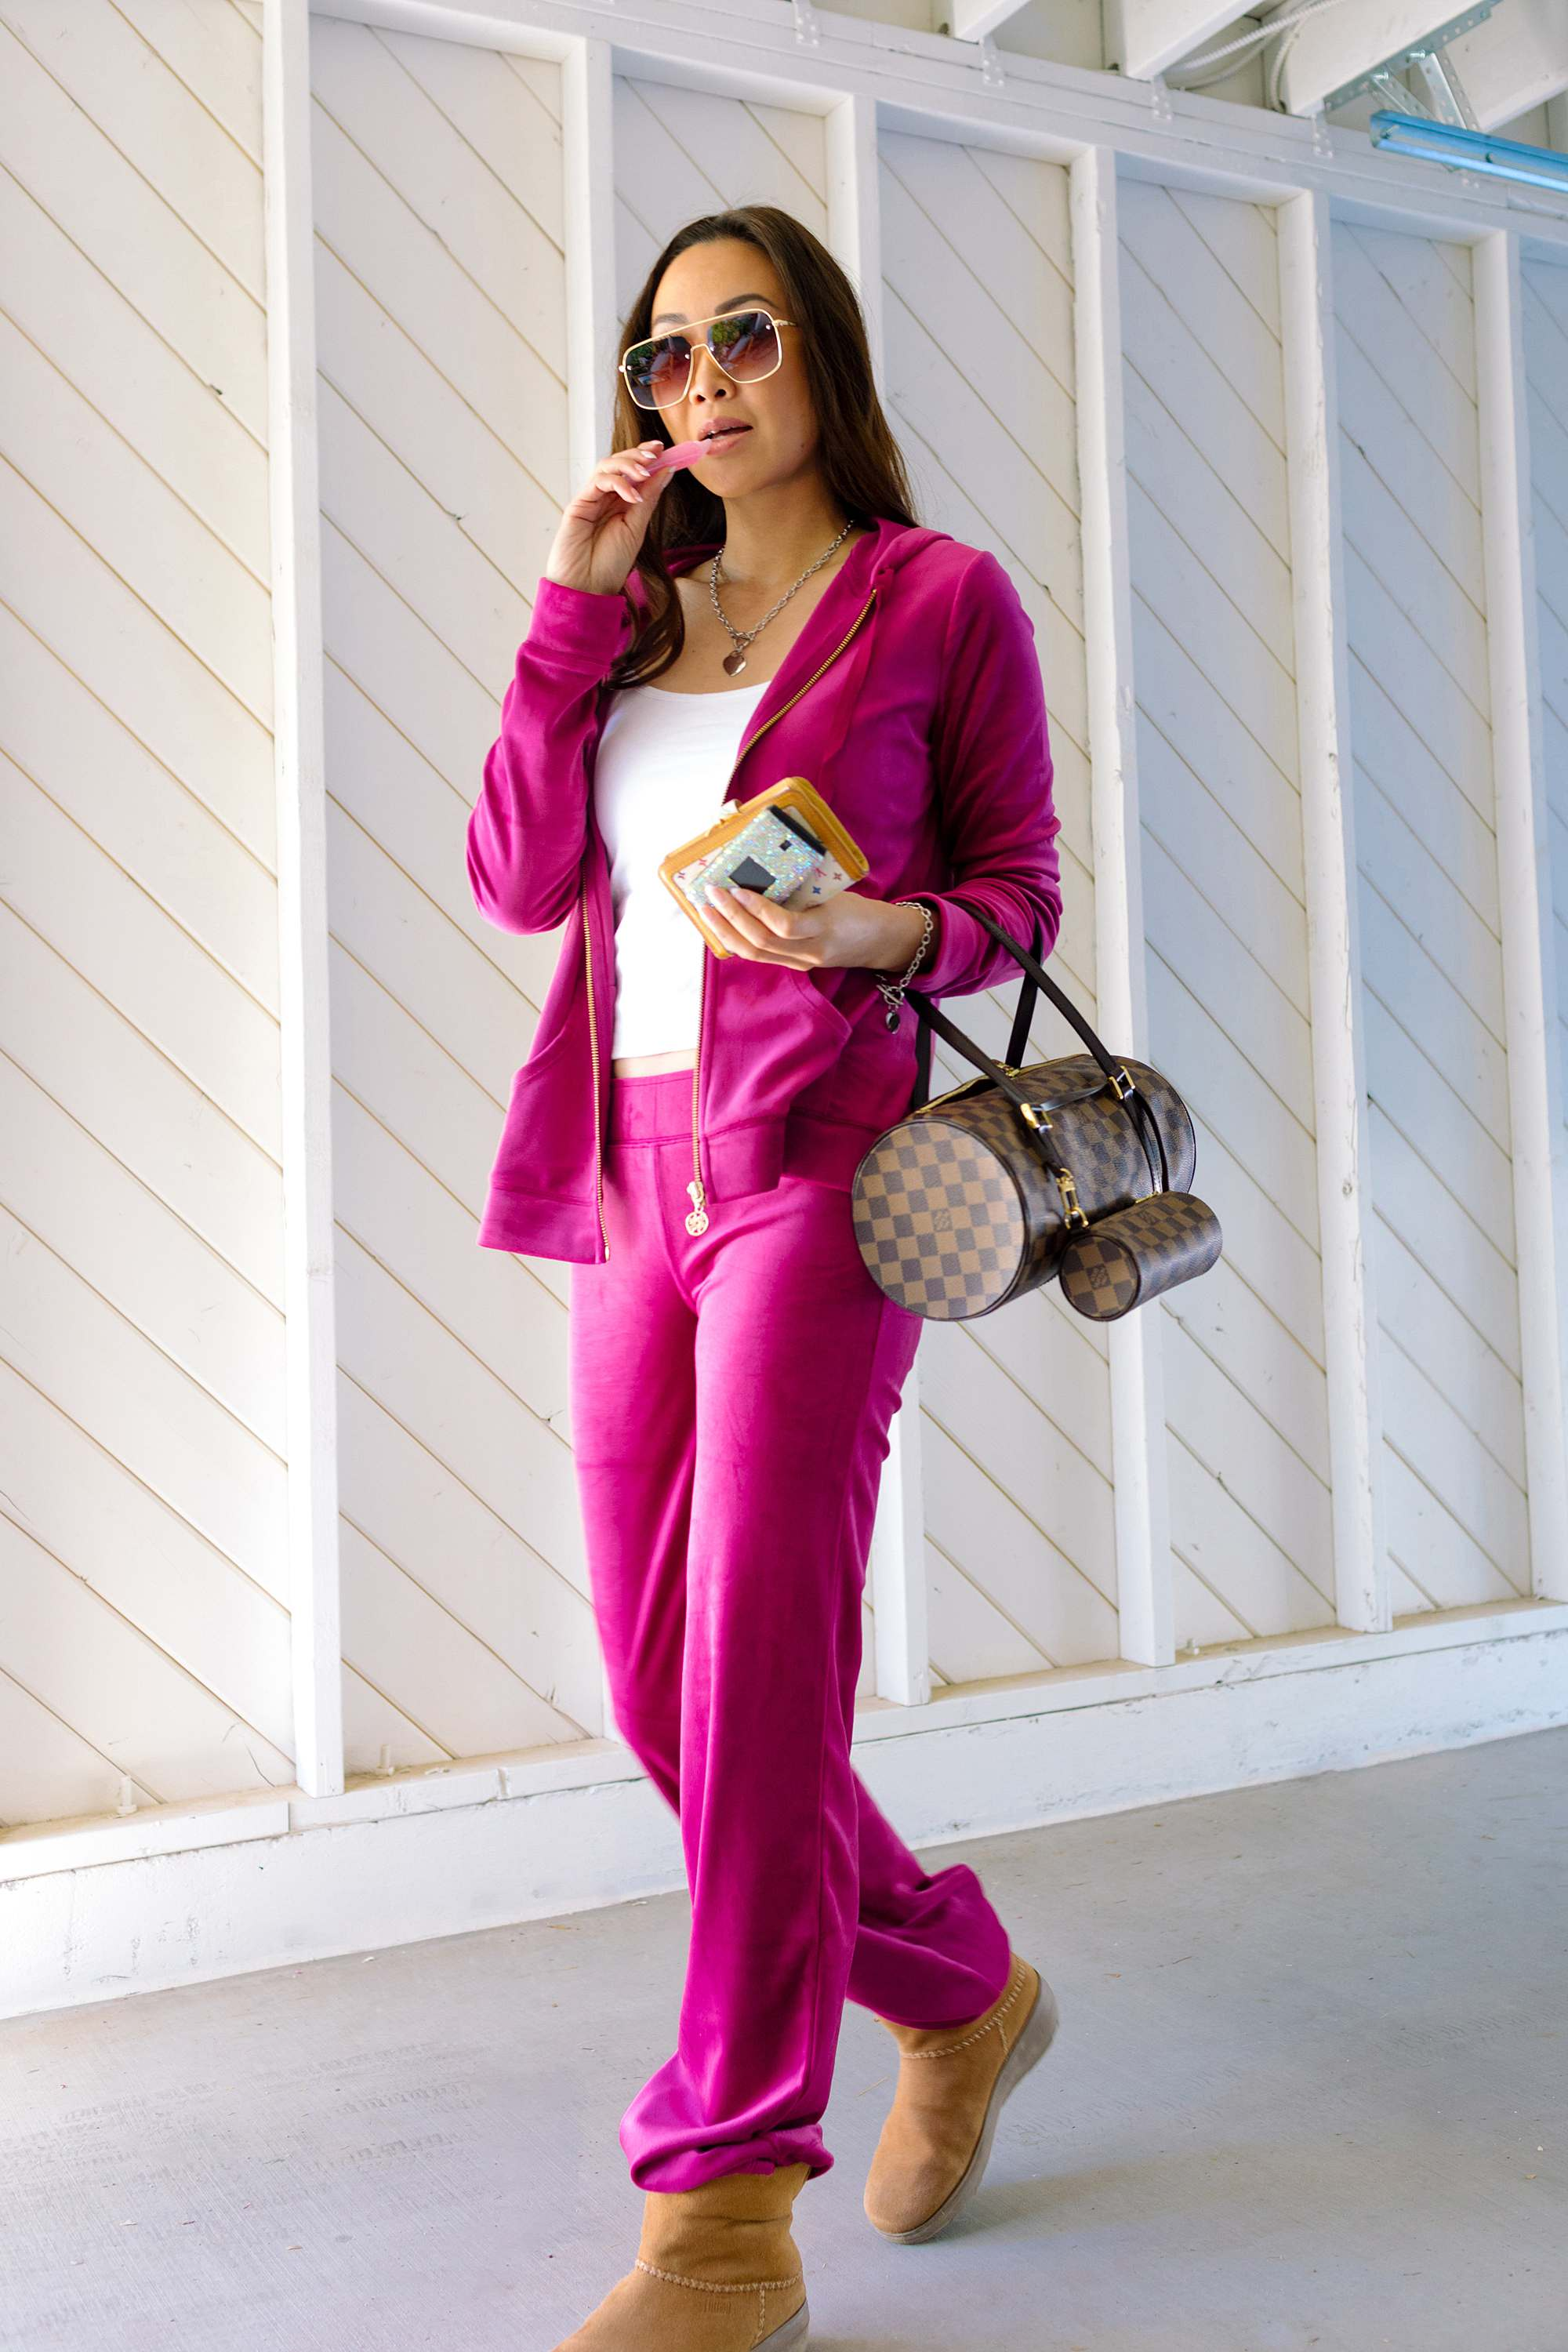 pink velour set early 2000s trend velour tracksuit is back outfit look